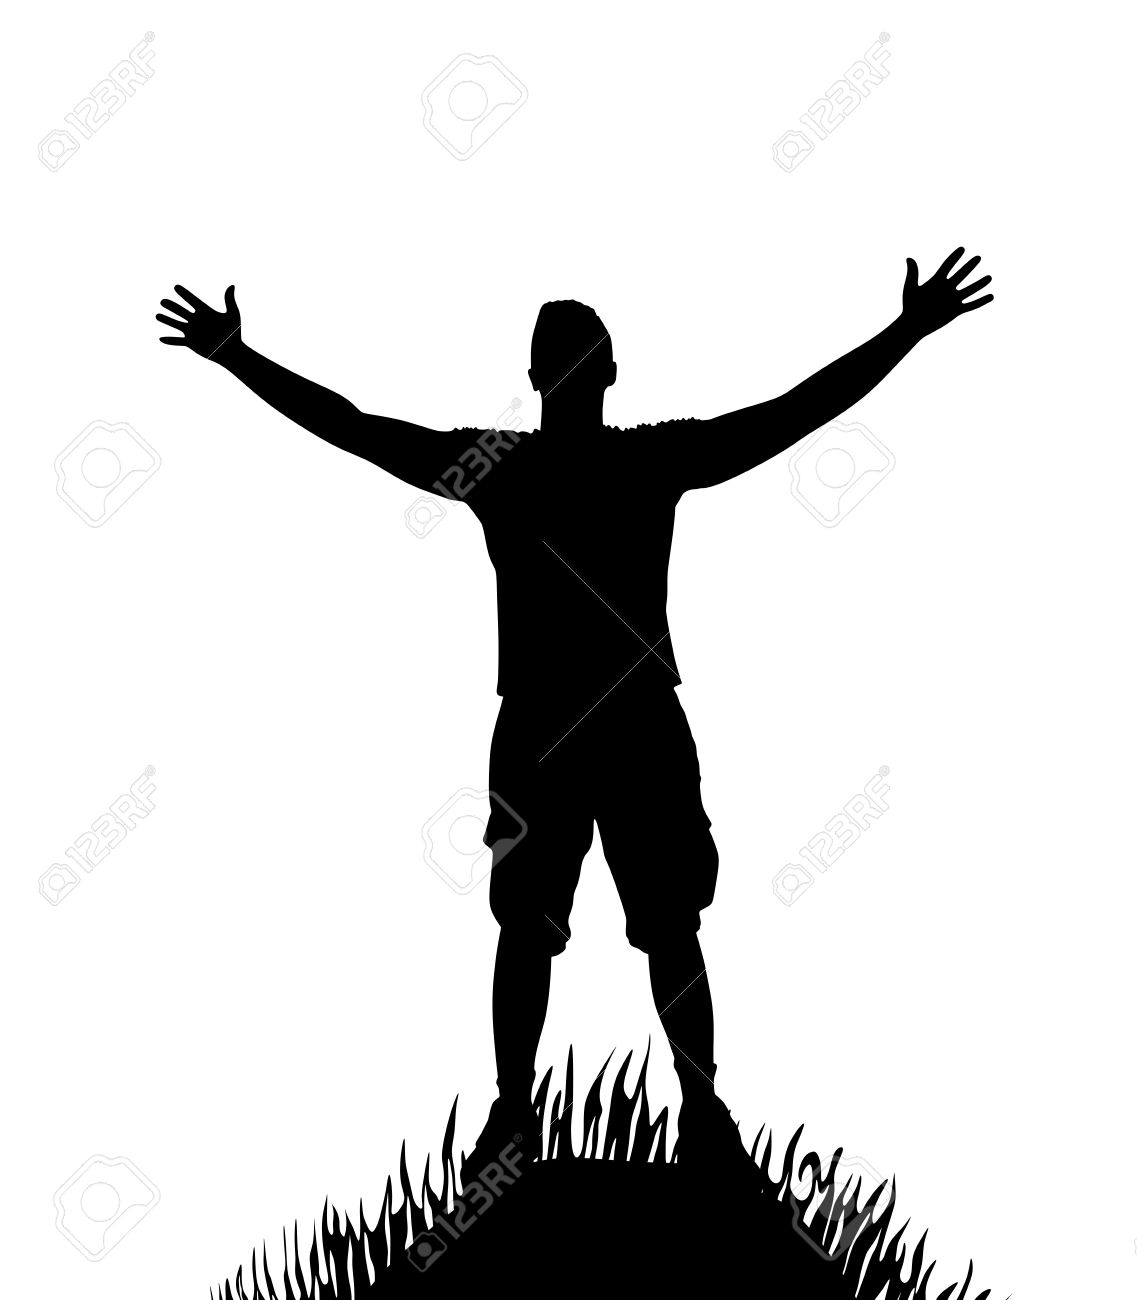 Jesus at getdrawings com. Arm clipart silhouette